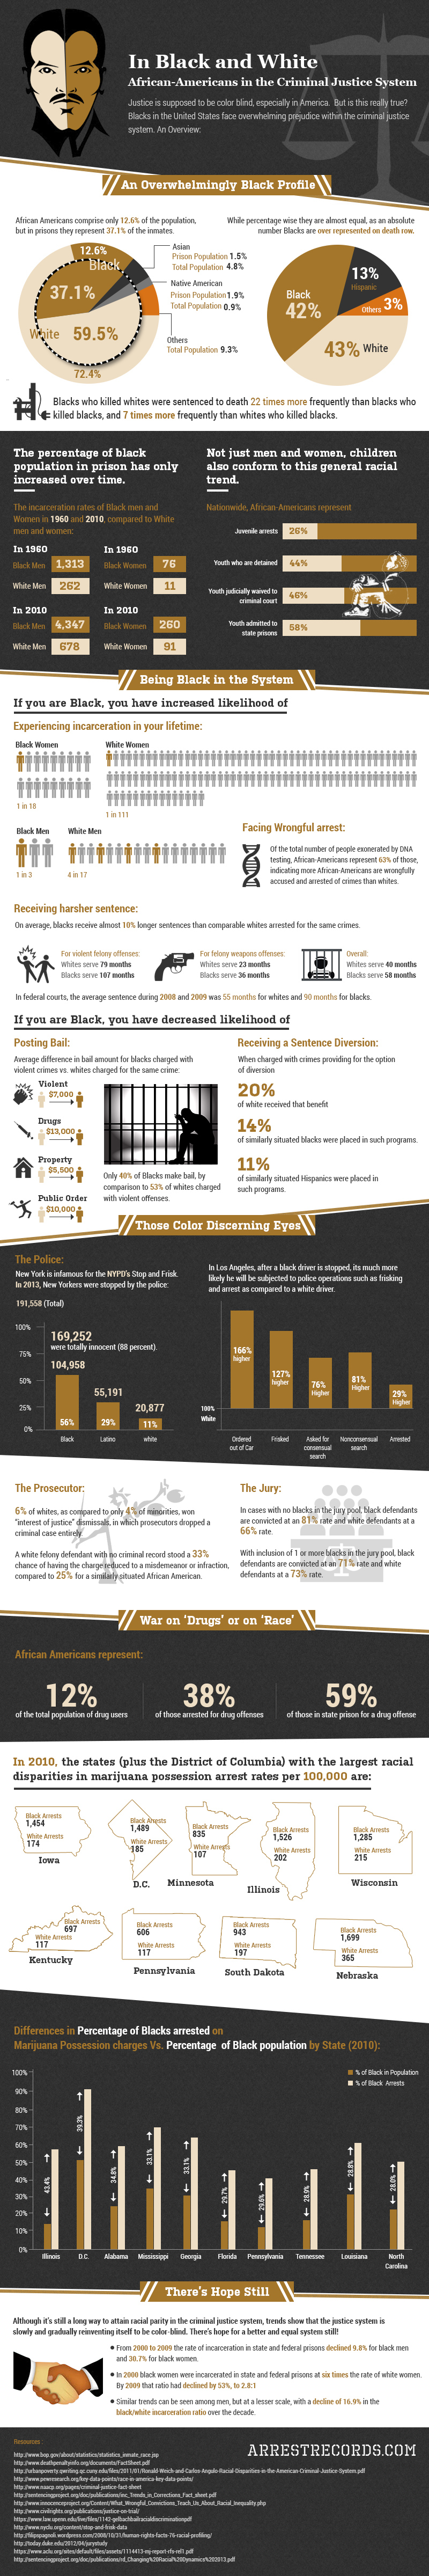 Racially Profiling in the Criminal Justice System